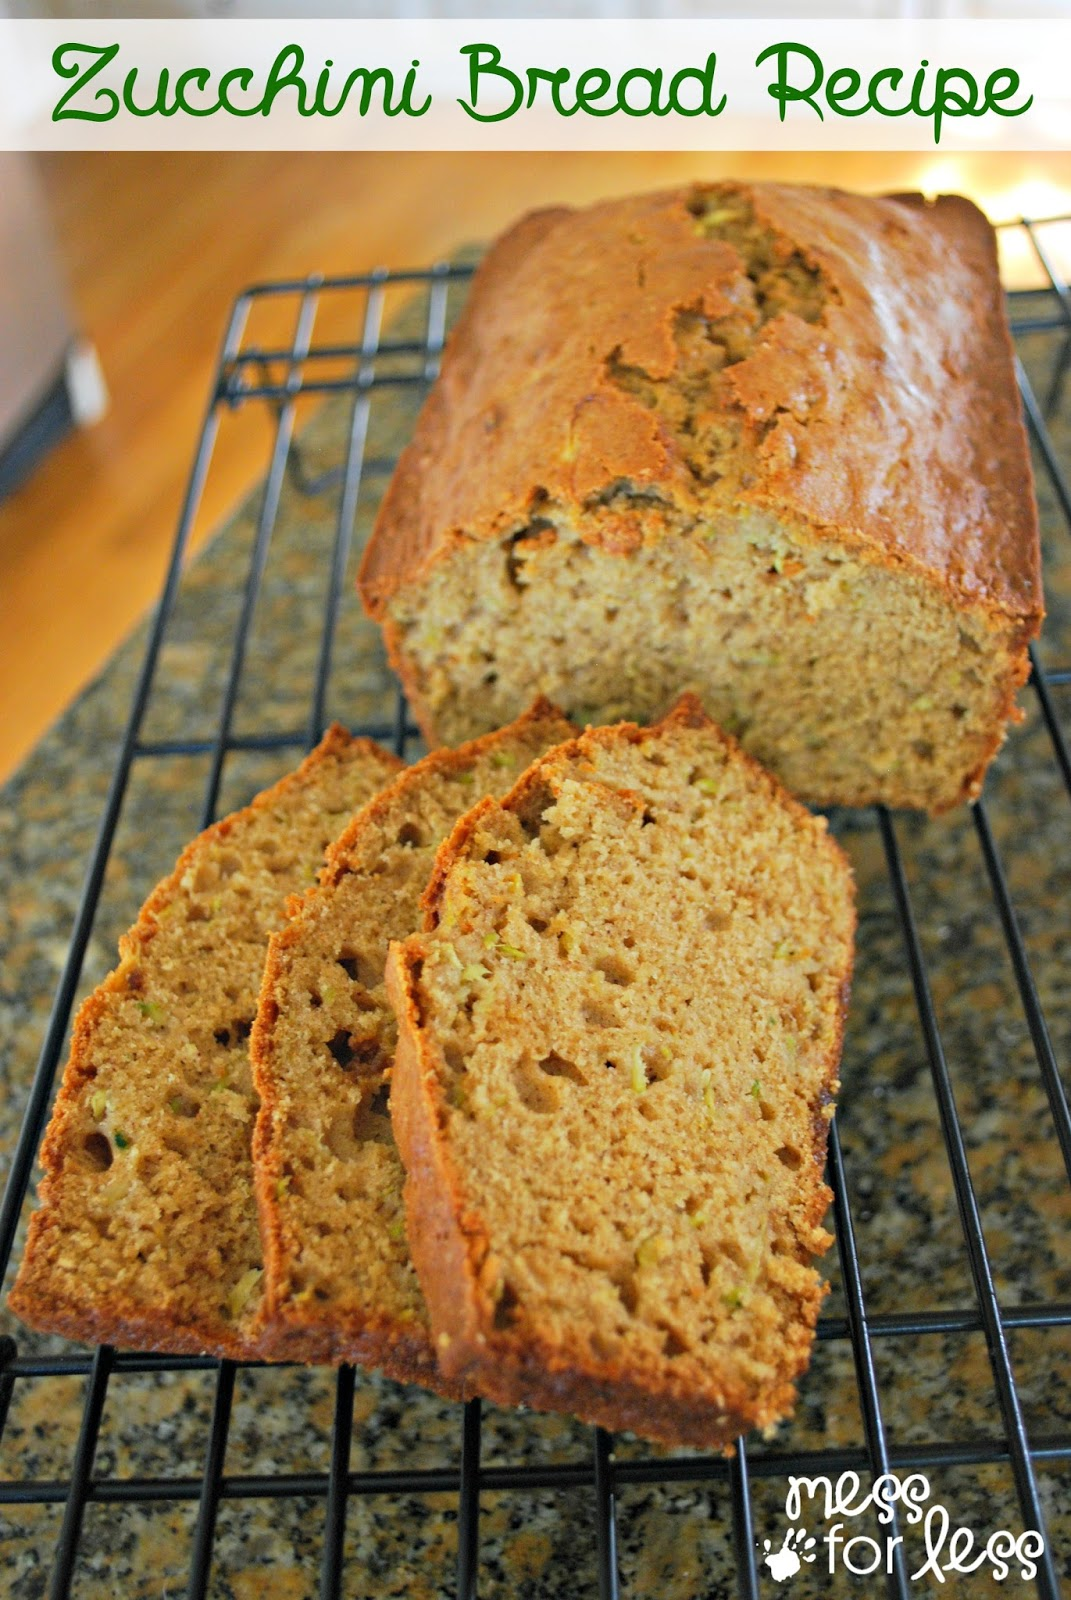 Zucchini Bread Recipe - I made this recipe with my veggie avoiding kids who then proceeded to gobble it up. So good warm and slathered with butter!